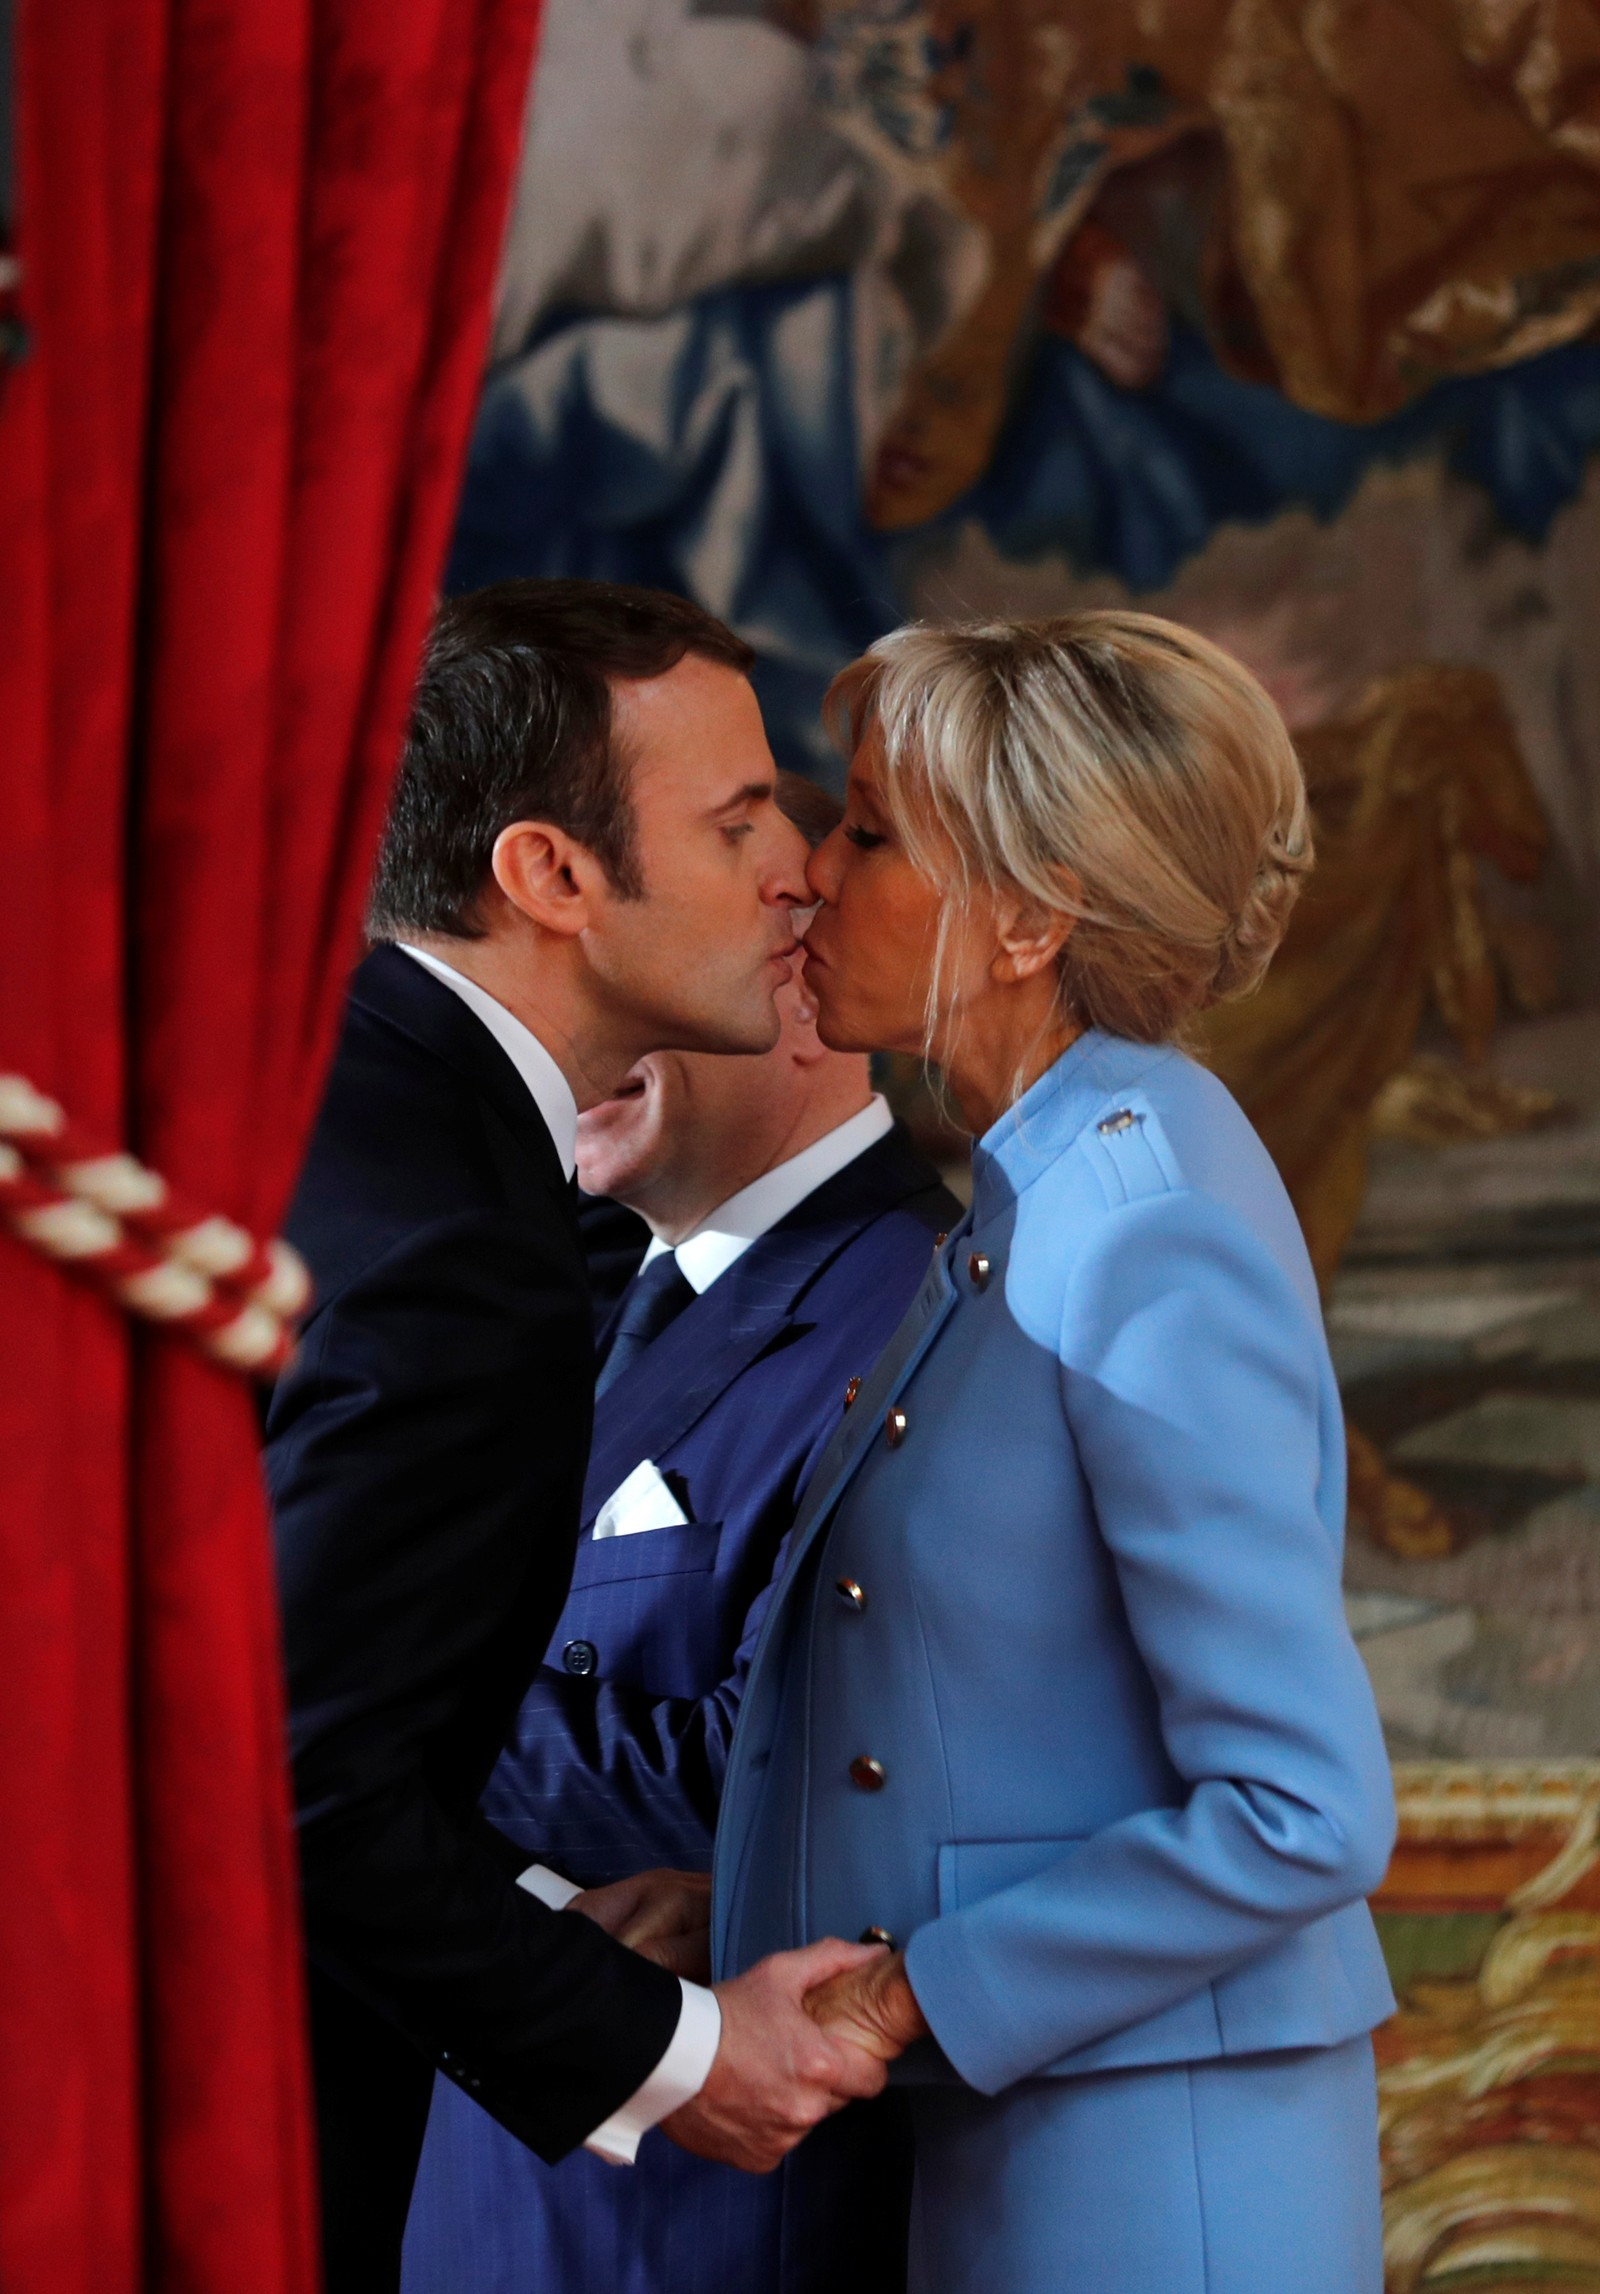 FRANCE-ELECTION/ French President Emmanuel Macron kisses his wife Brigitte Trogneux during the handover ceremony in Paris, France, May 14, 2017. REUTERS/Philippe Wojazer French President Emmanuel Macron kisses his wife Brigitte Trogneux during the handover ceremony in Paris